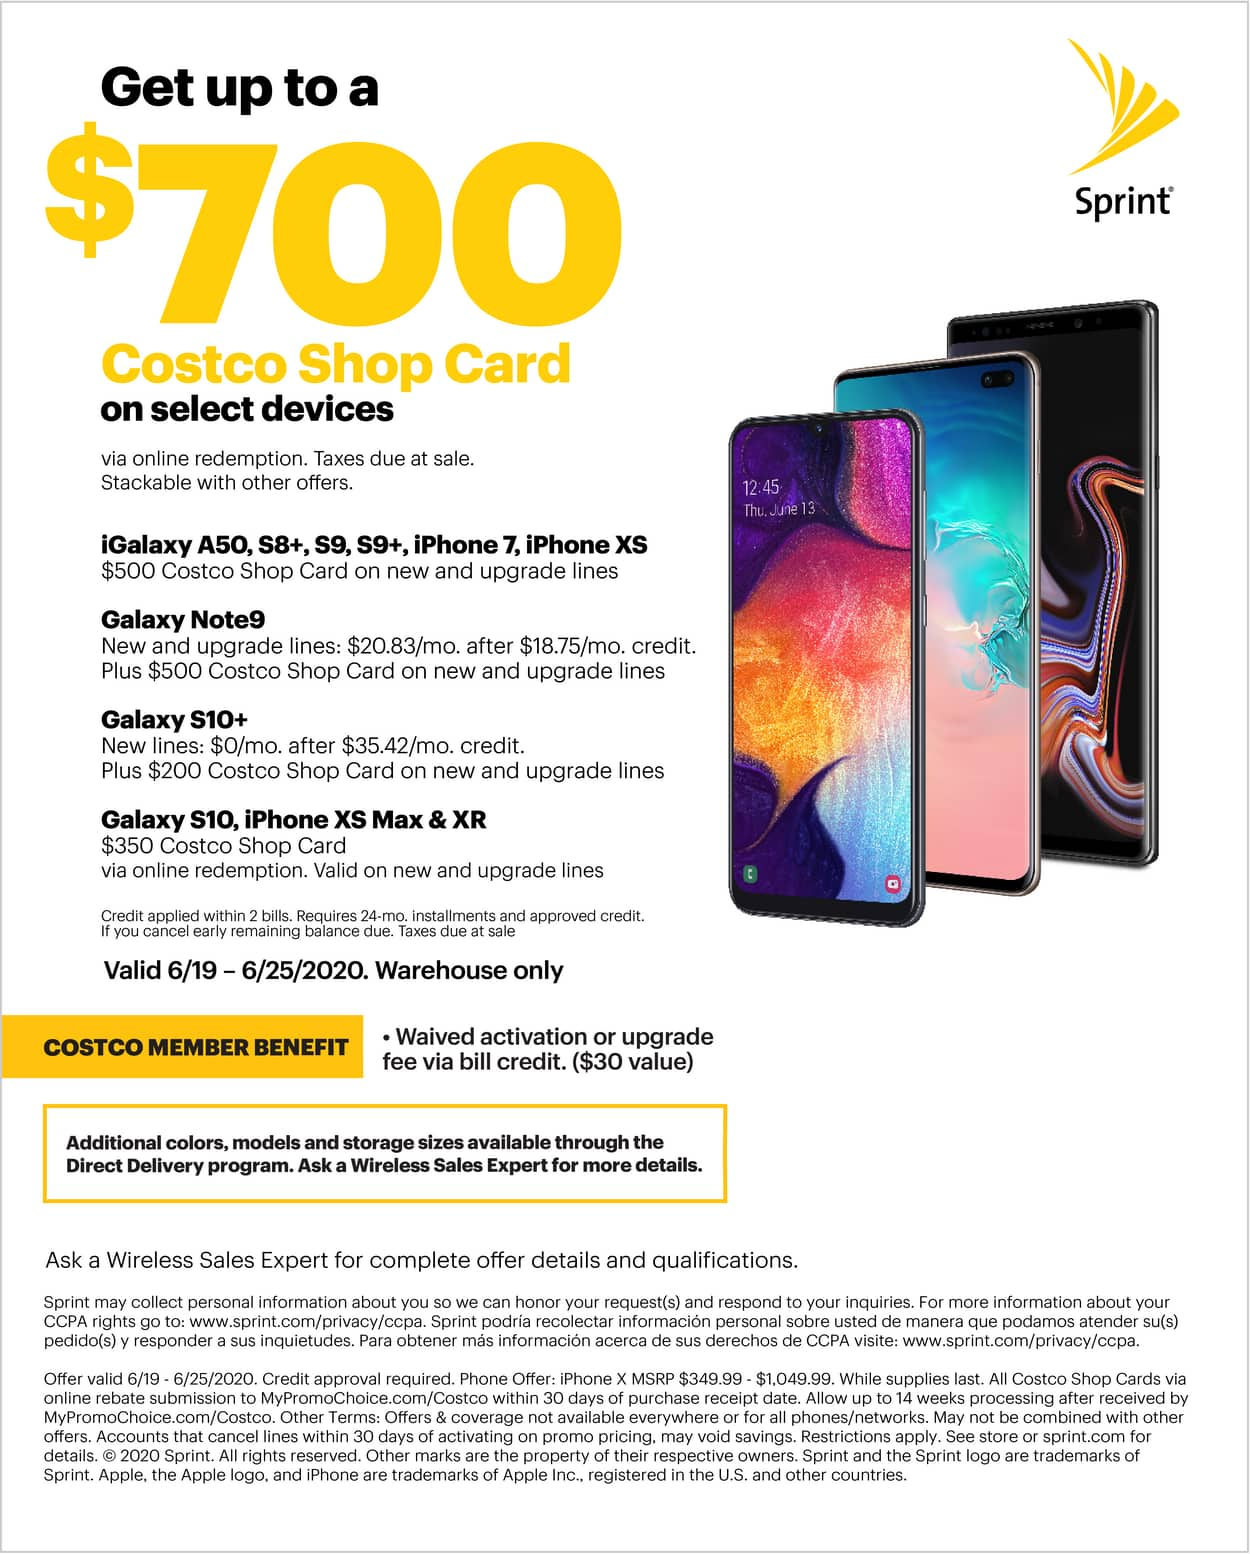 Costco In-Store: Buy iPhone XS (Sprint) for $600, Get $500 Back via Costco Shop Card